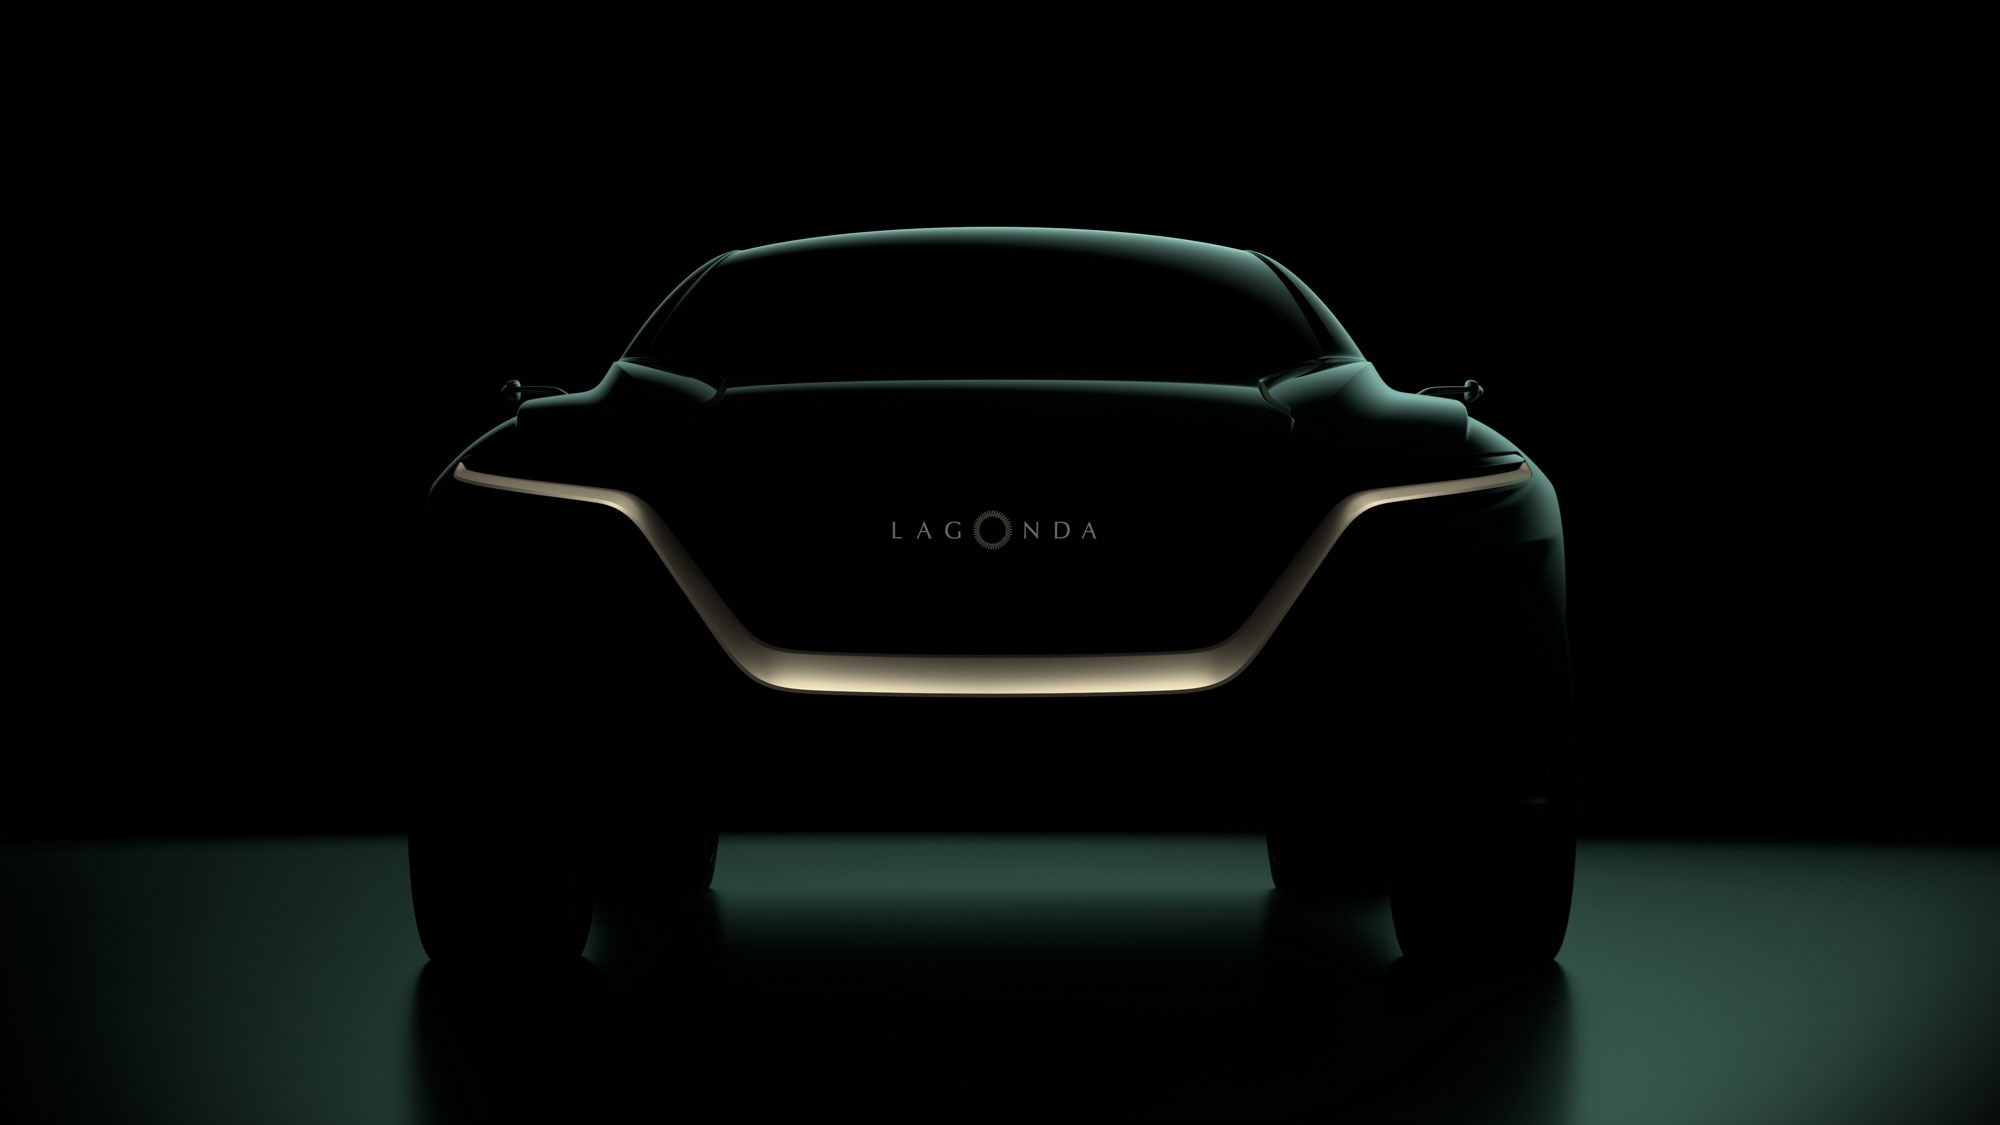 Lagonda All Terrain Concept Aston Martin electric SUV teased before Geneva